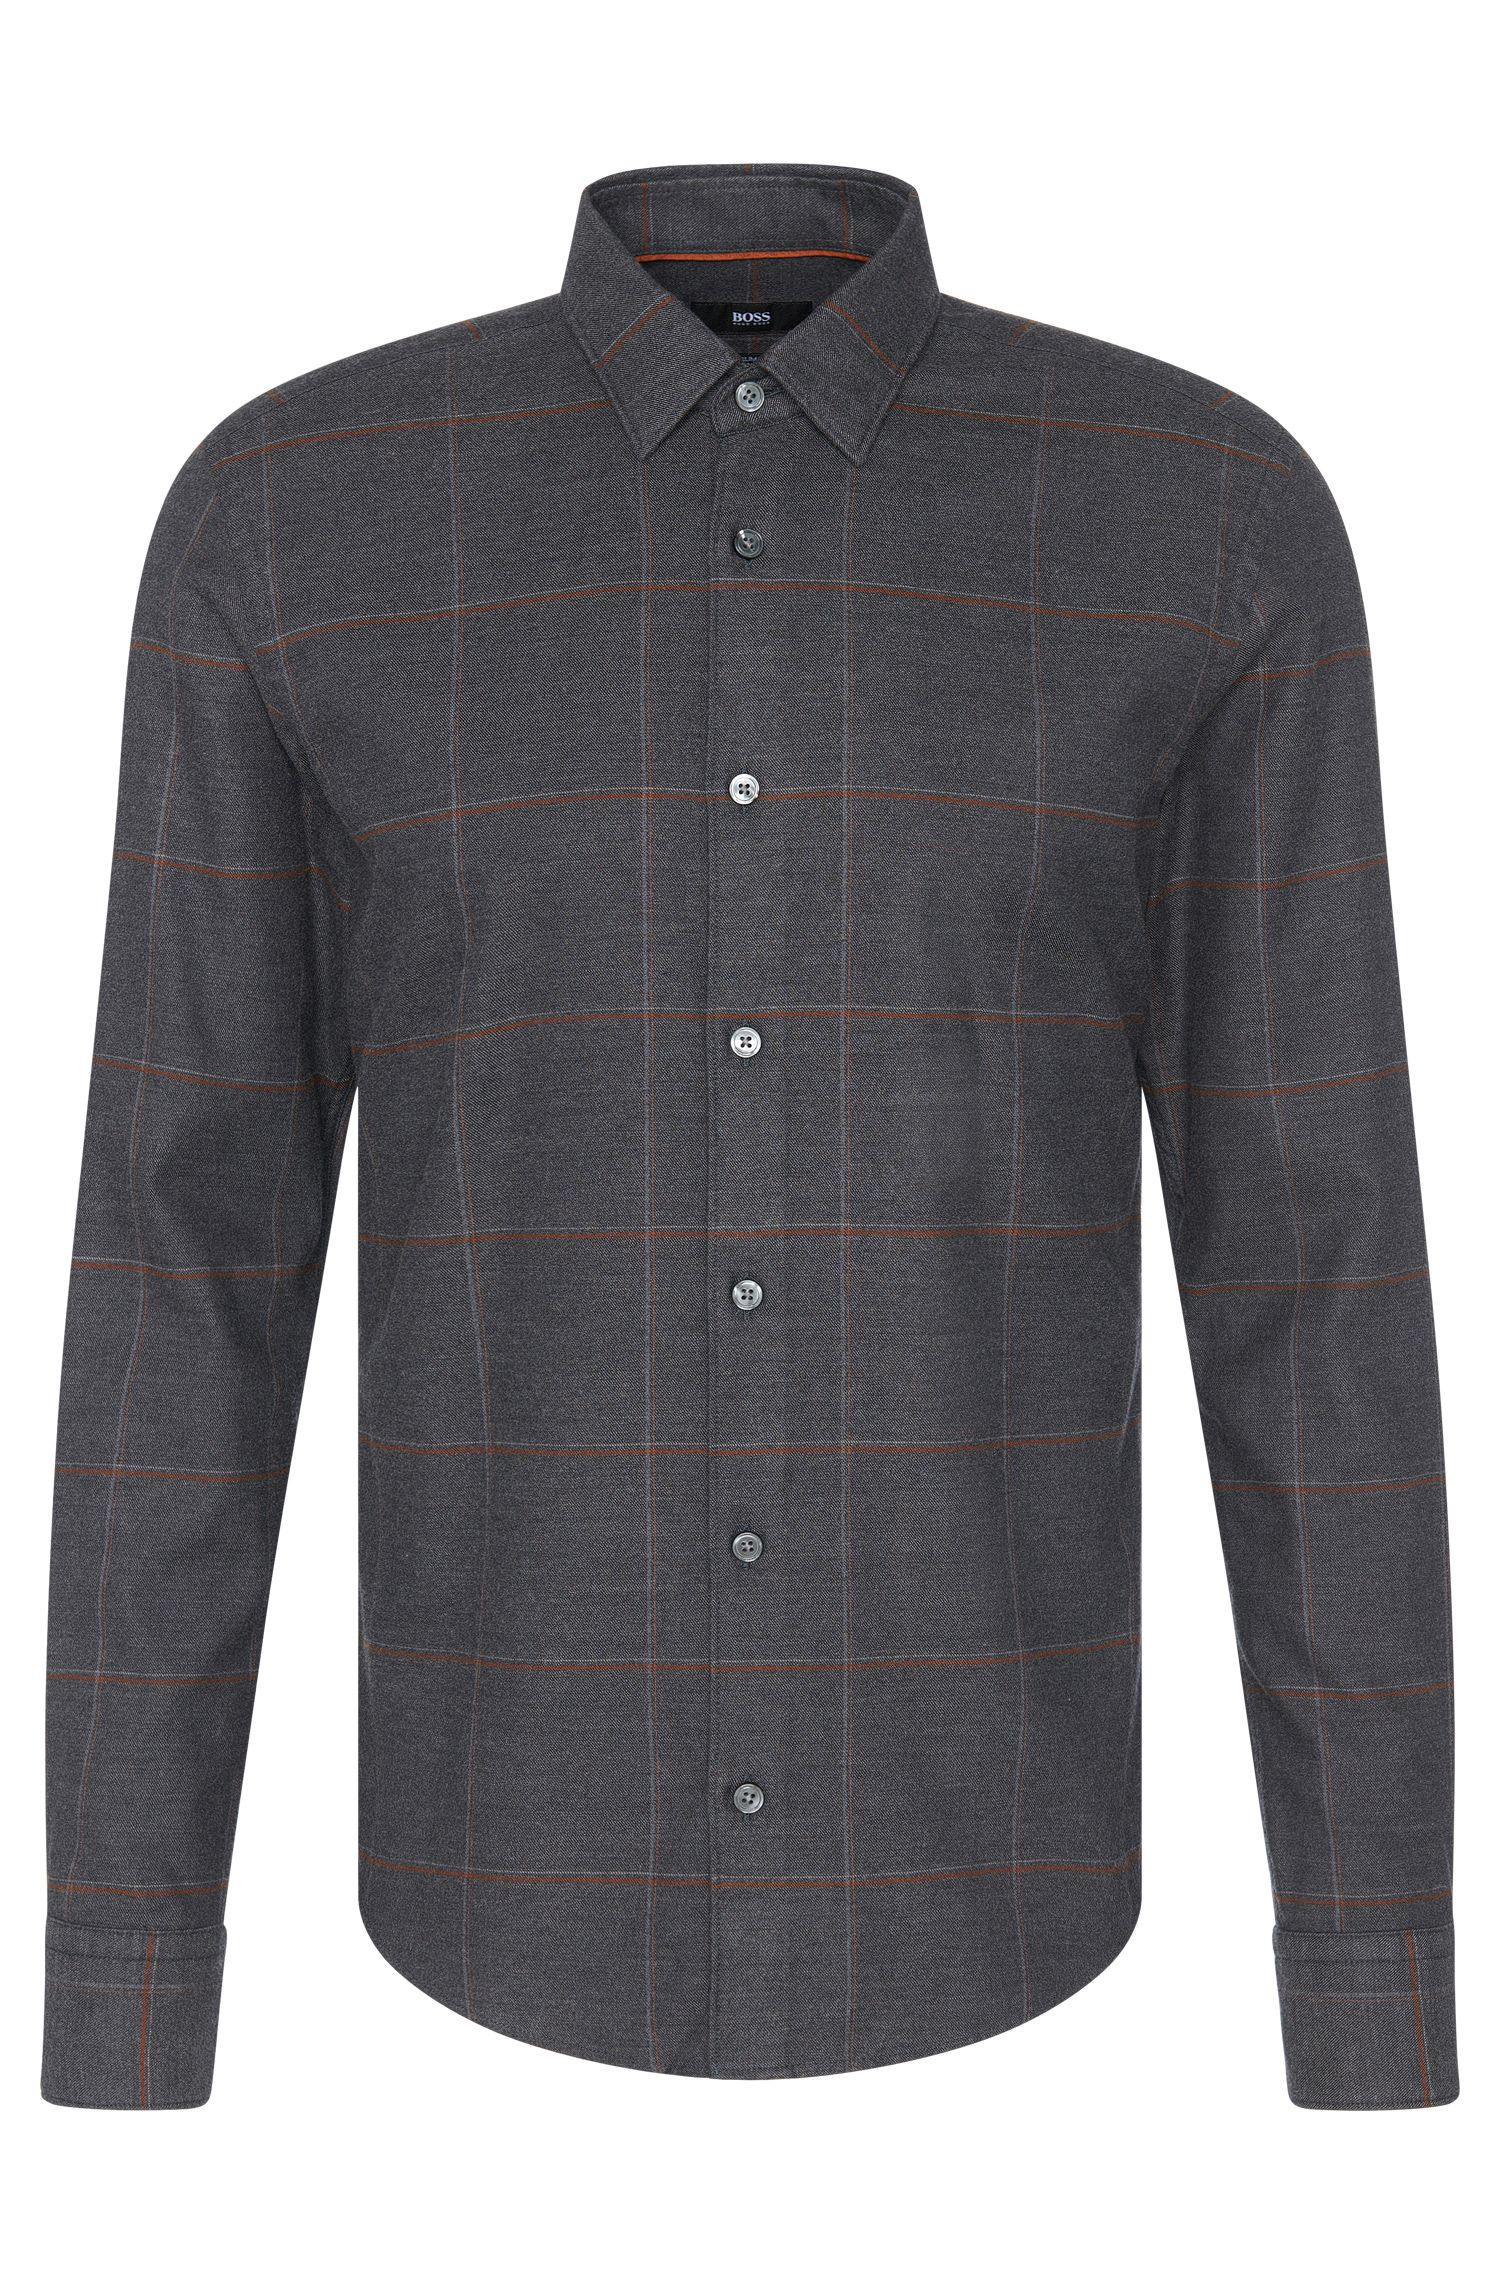 'Reid F' | Slim Fit, Cotton Lyocell Button Down Shirt